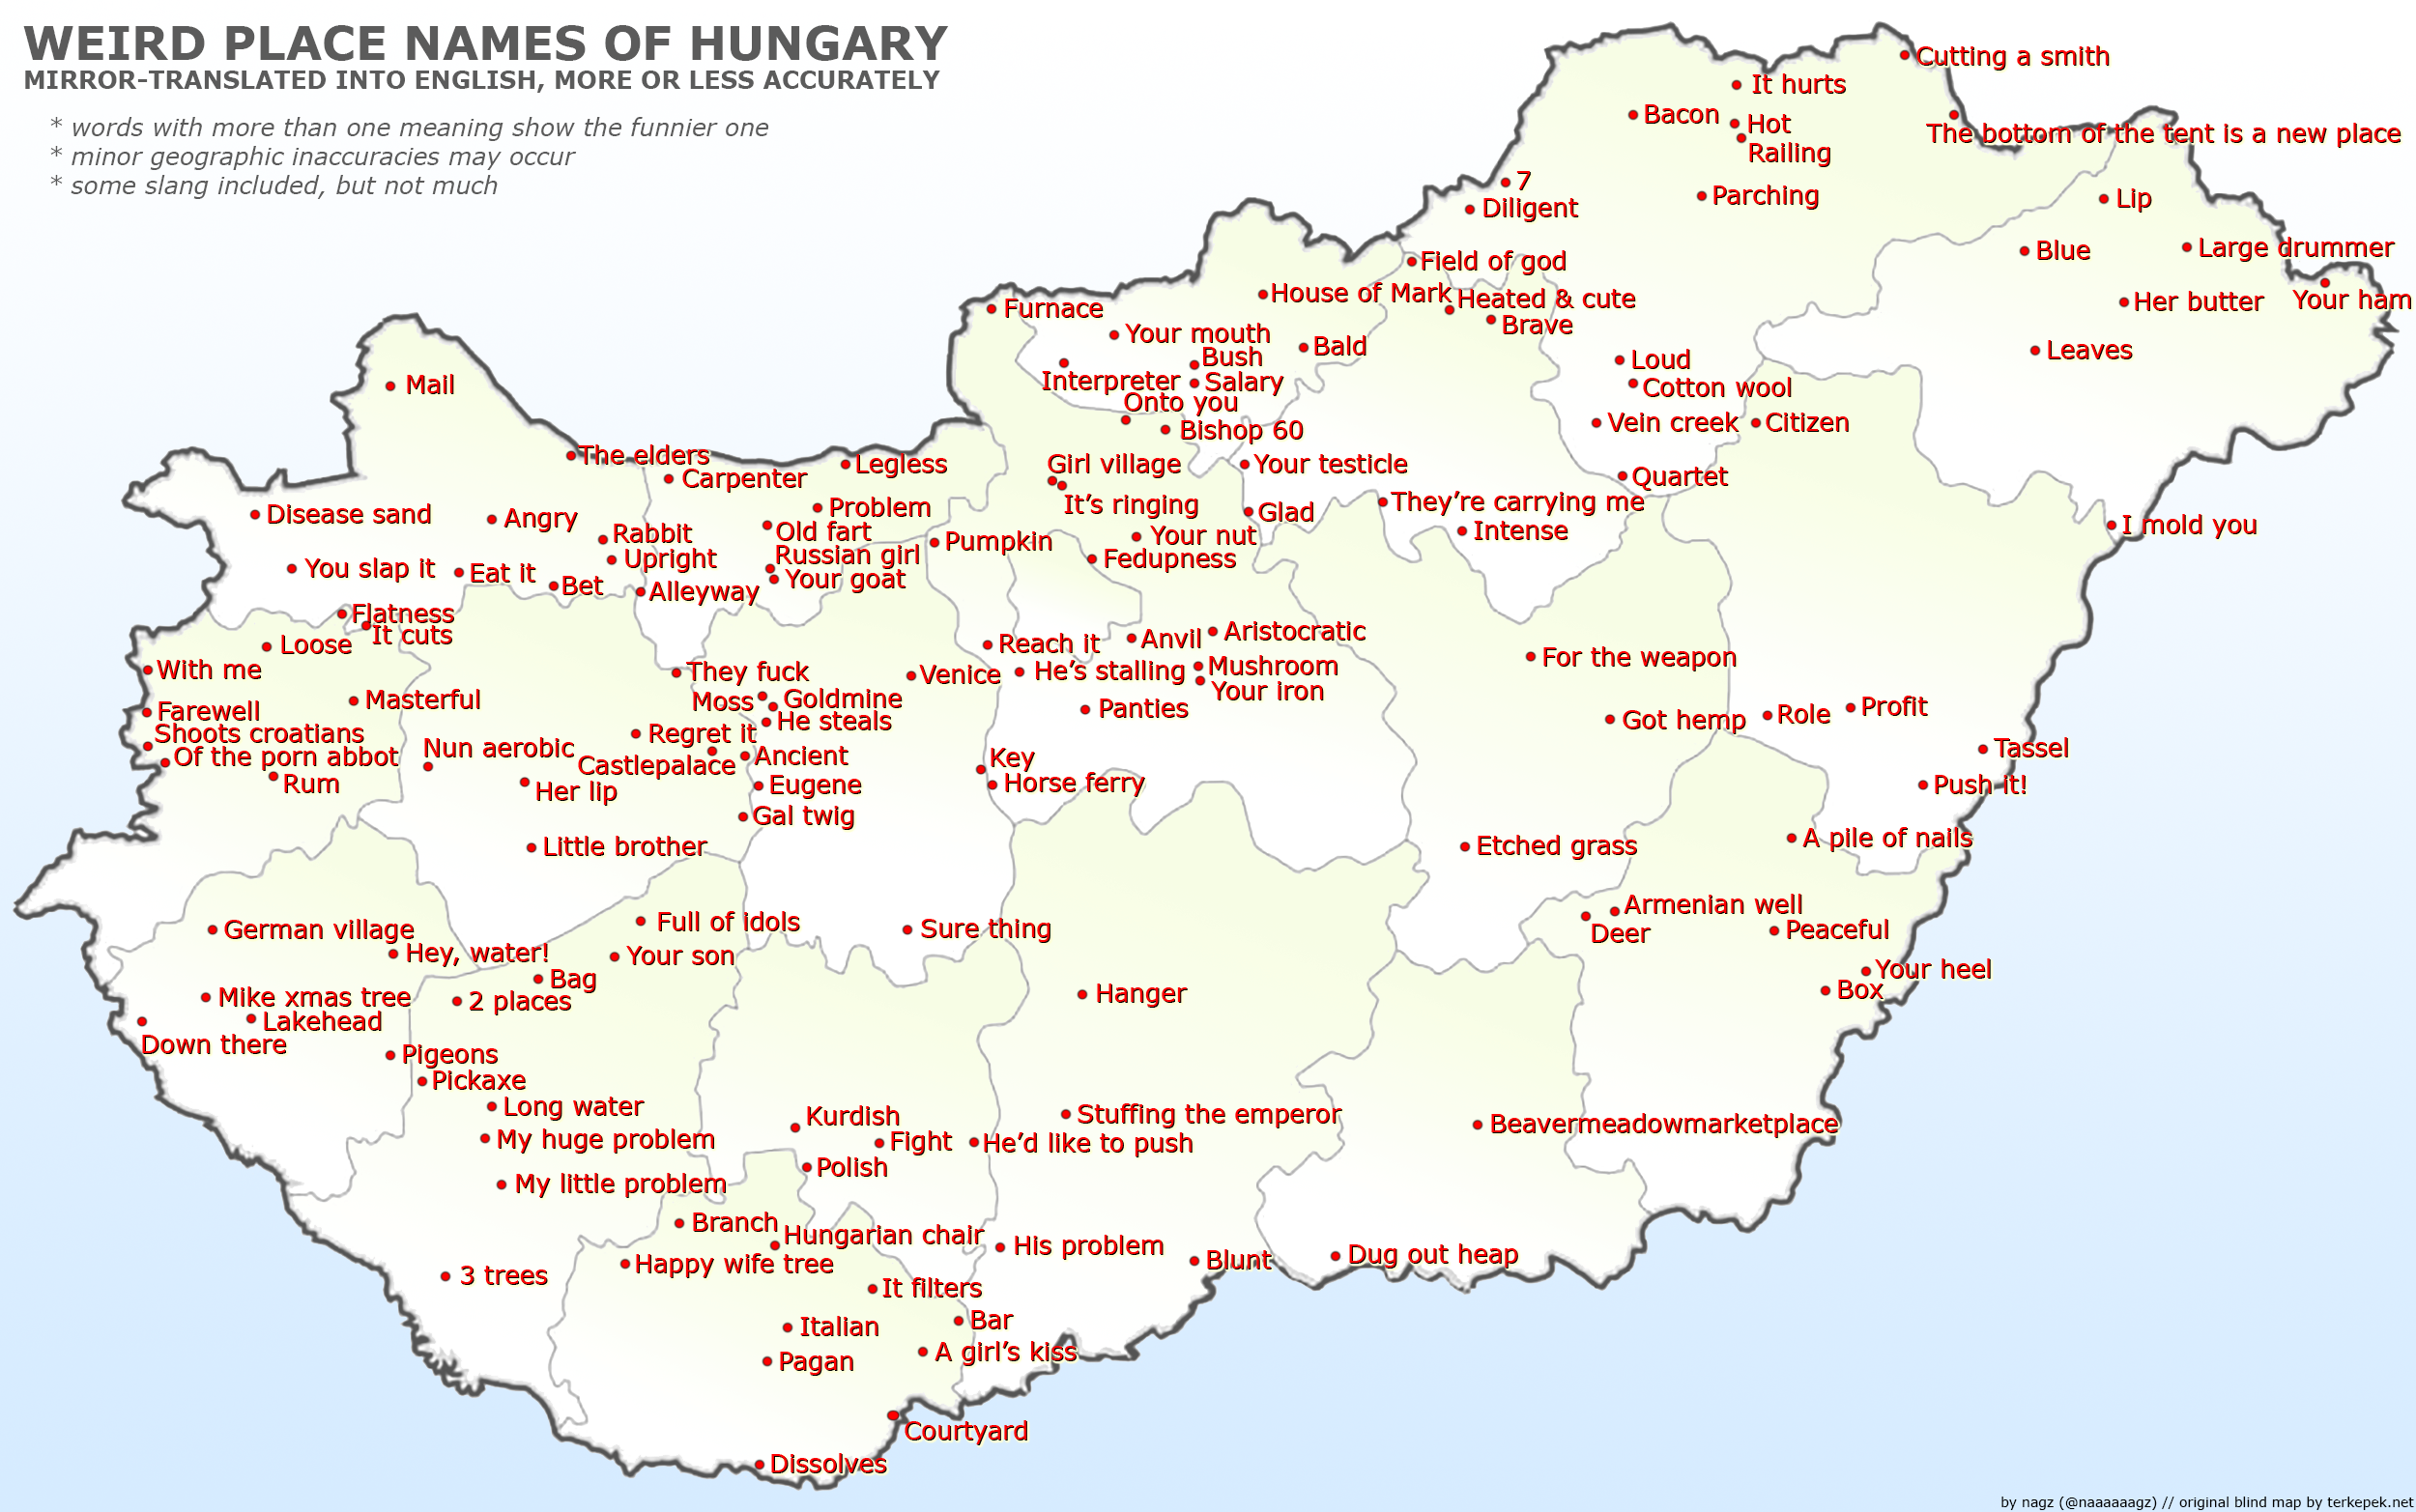 Weird Place Names of Hungary